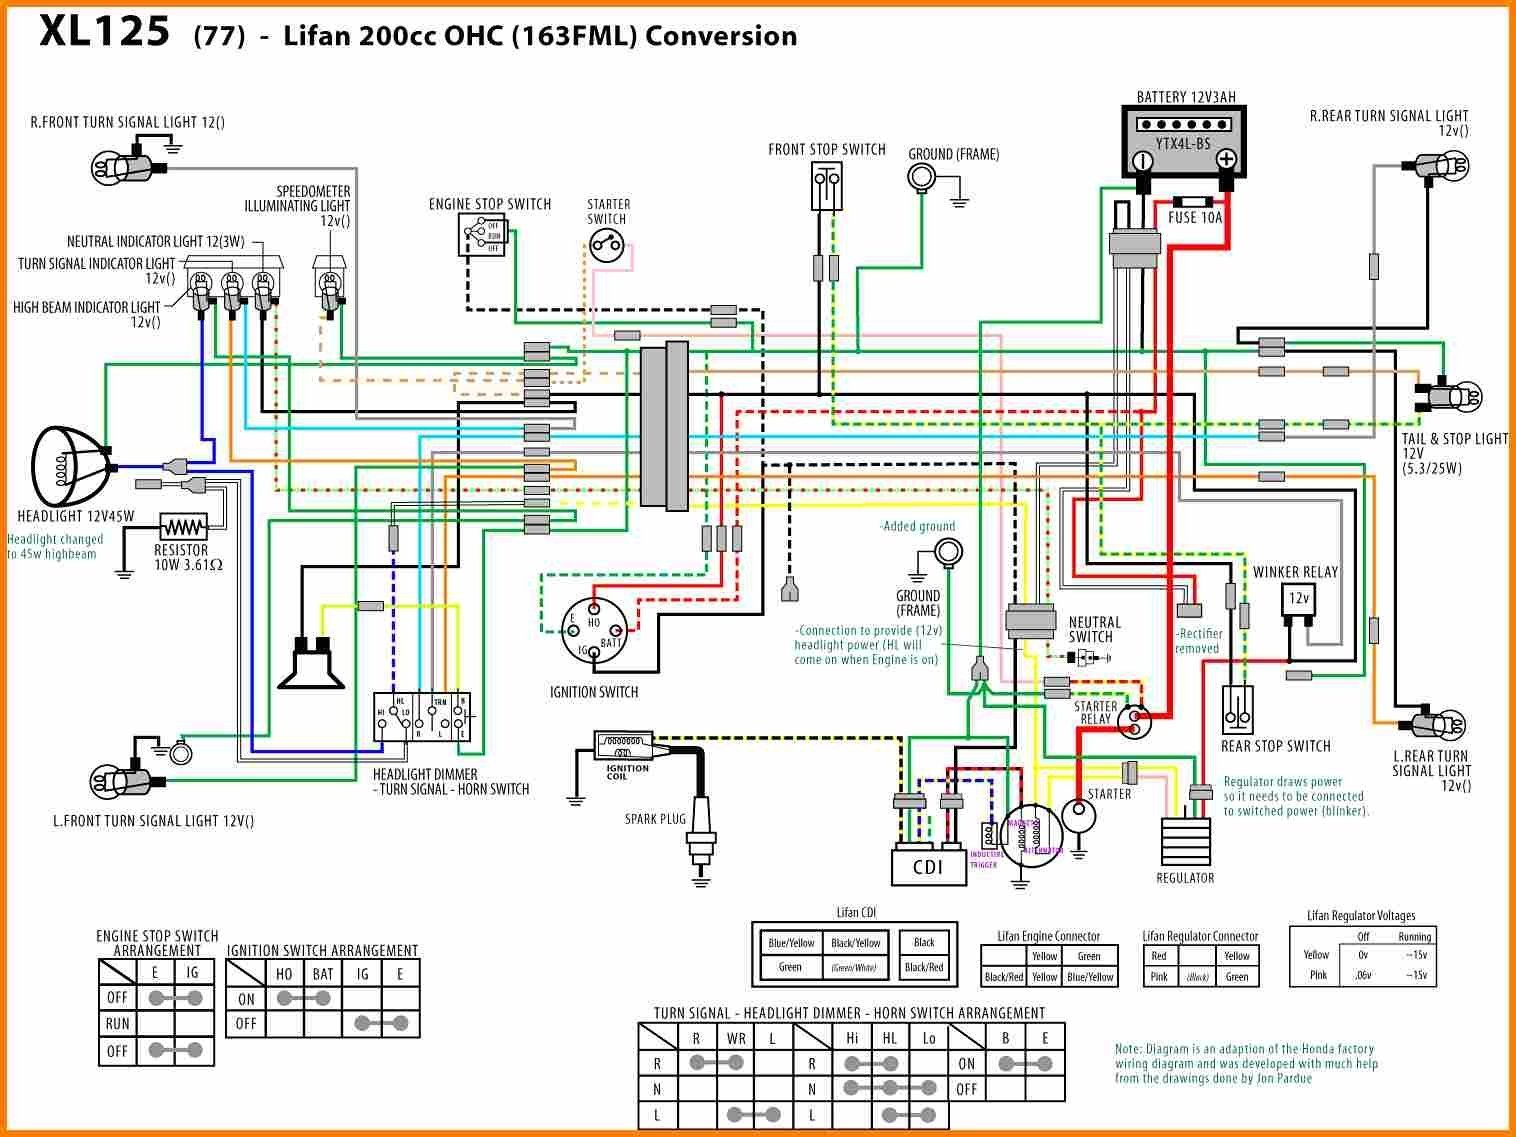 250 atv wiring schematics lifan 110cc engine diagram lifan 125cc    wiring    diagram  lifan 110cc engine diagram lifan 125cc    wiring    diagram